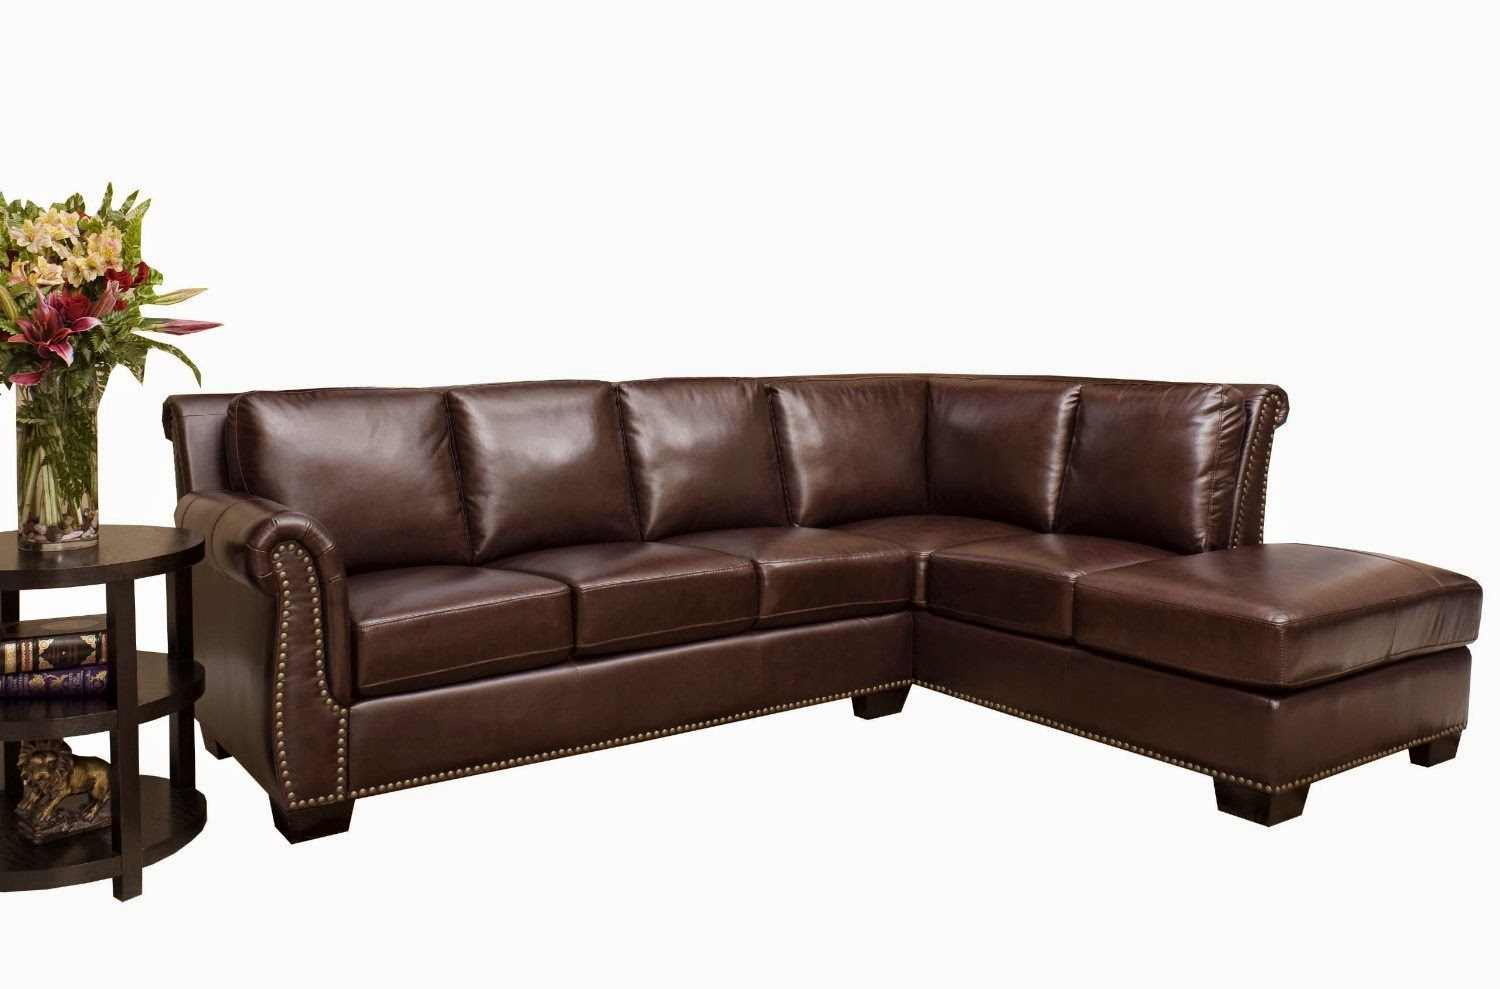 Sectional sofa leather sectional sofa for Leather sectional sofa